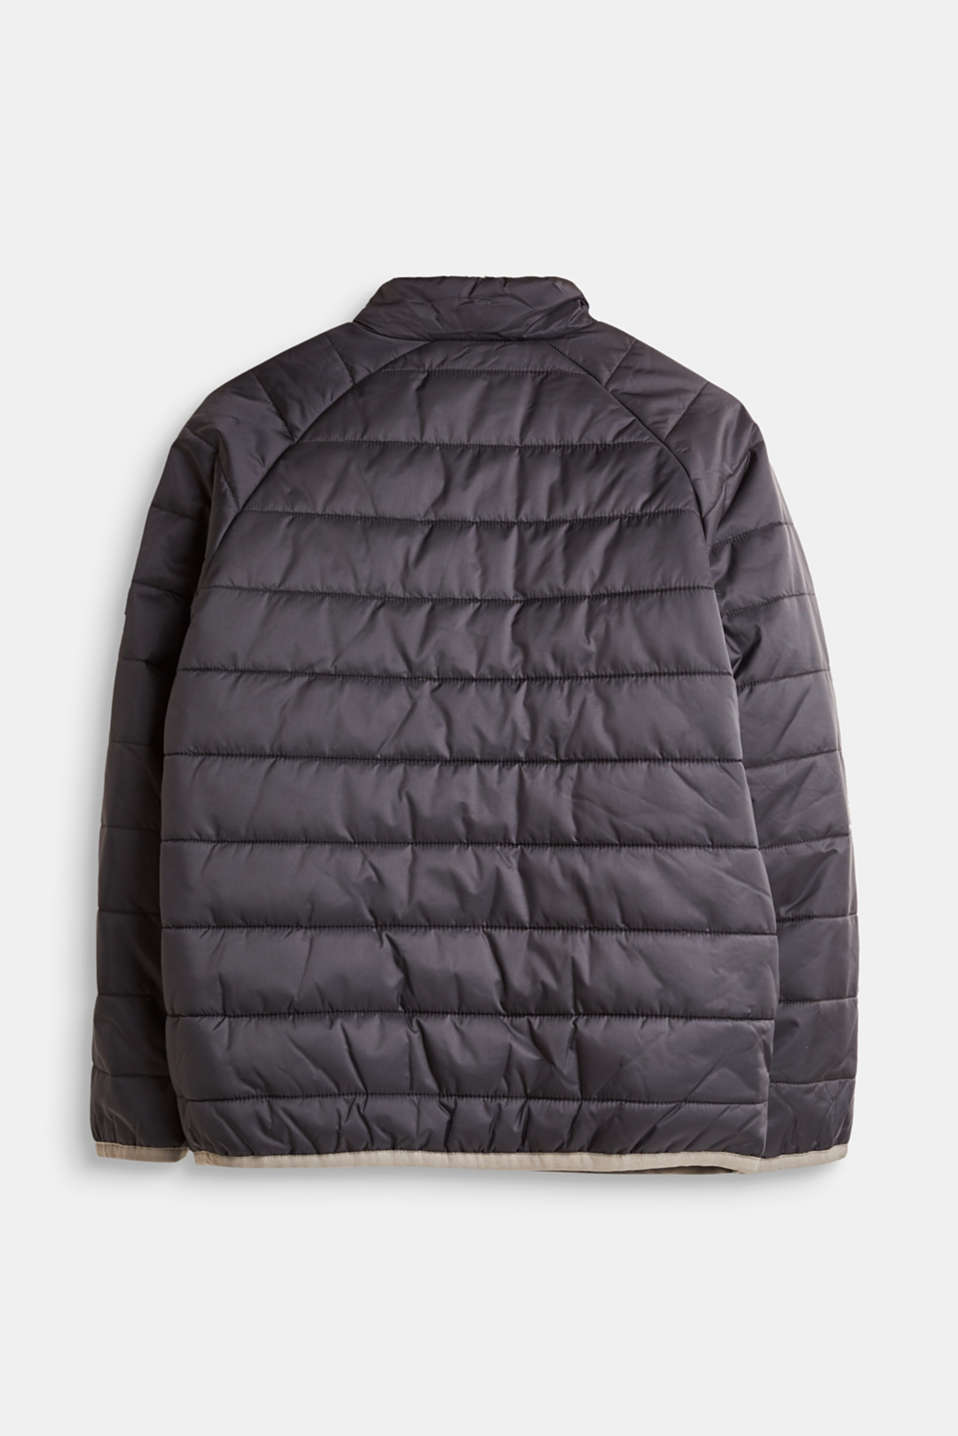 Lightweight quilted jacket with a stand-up collar